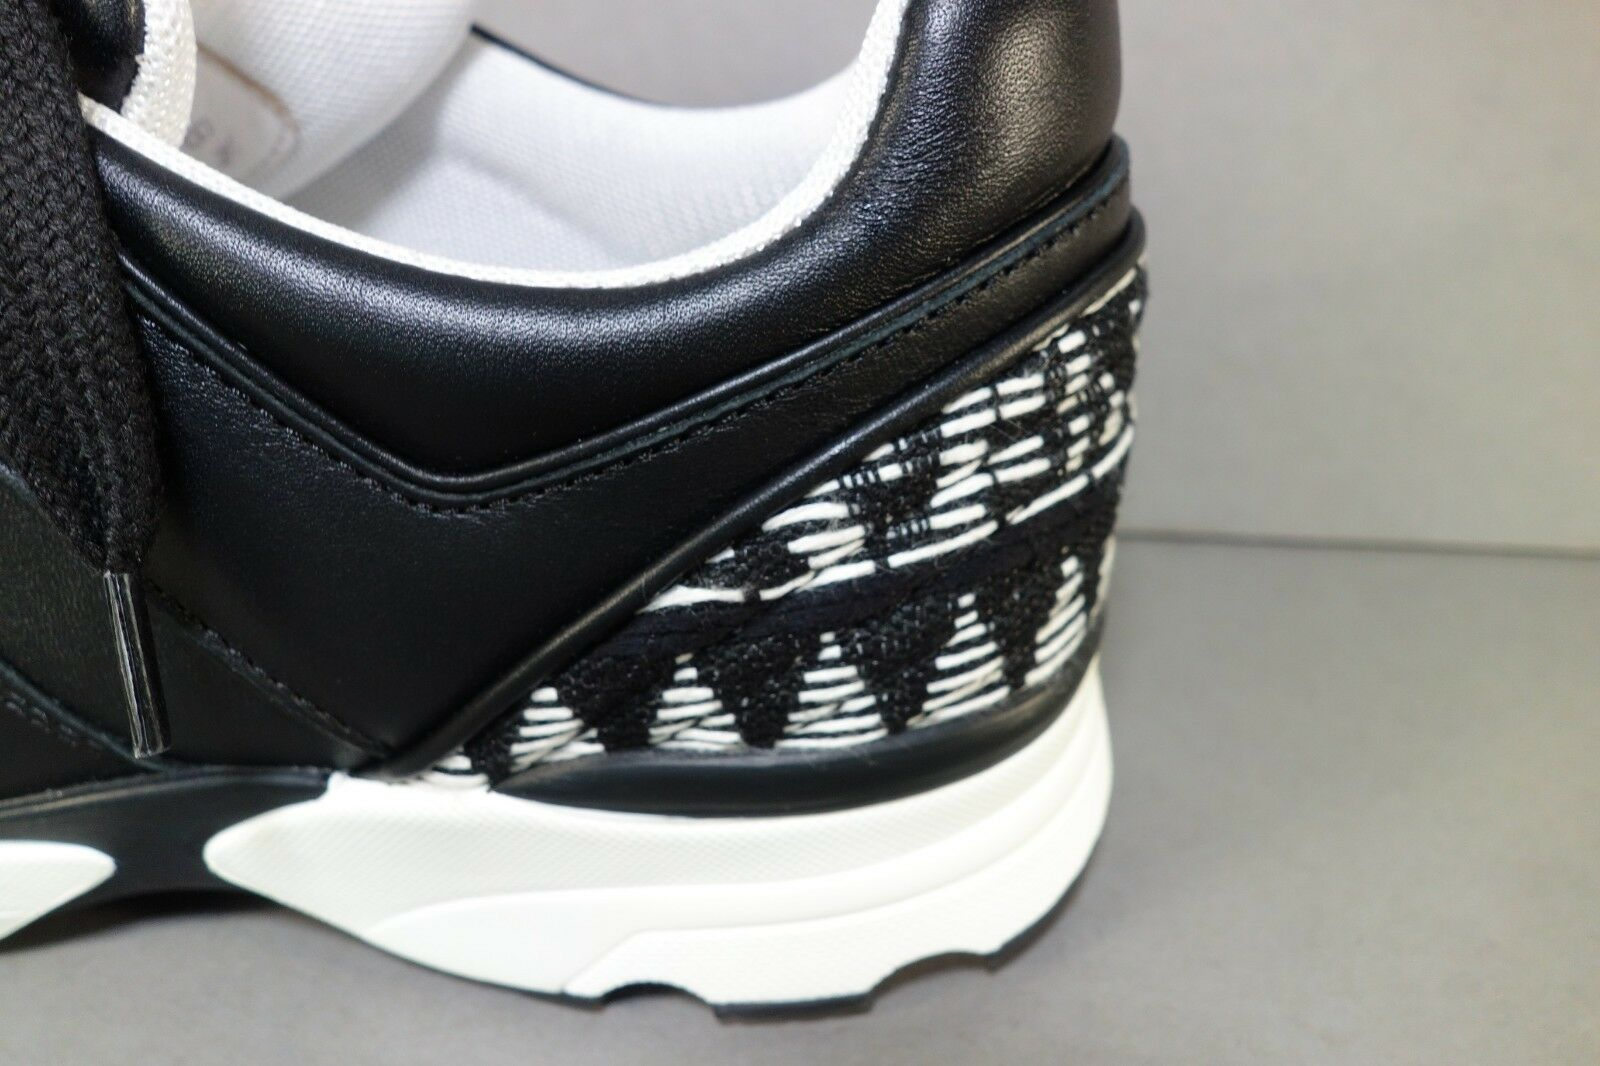 Buy CHANEL 36 5.5 Black White Tweed Leather Lace up SNEAKERS Tennis Shoes  Sport online  2a9f514a4b3